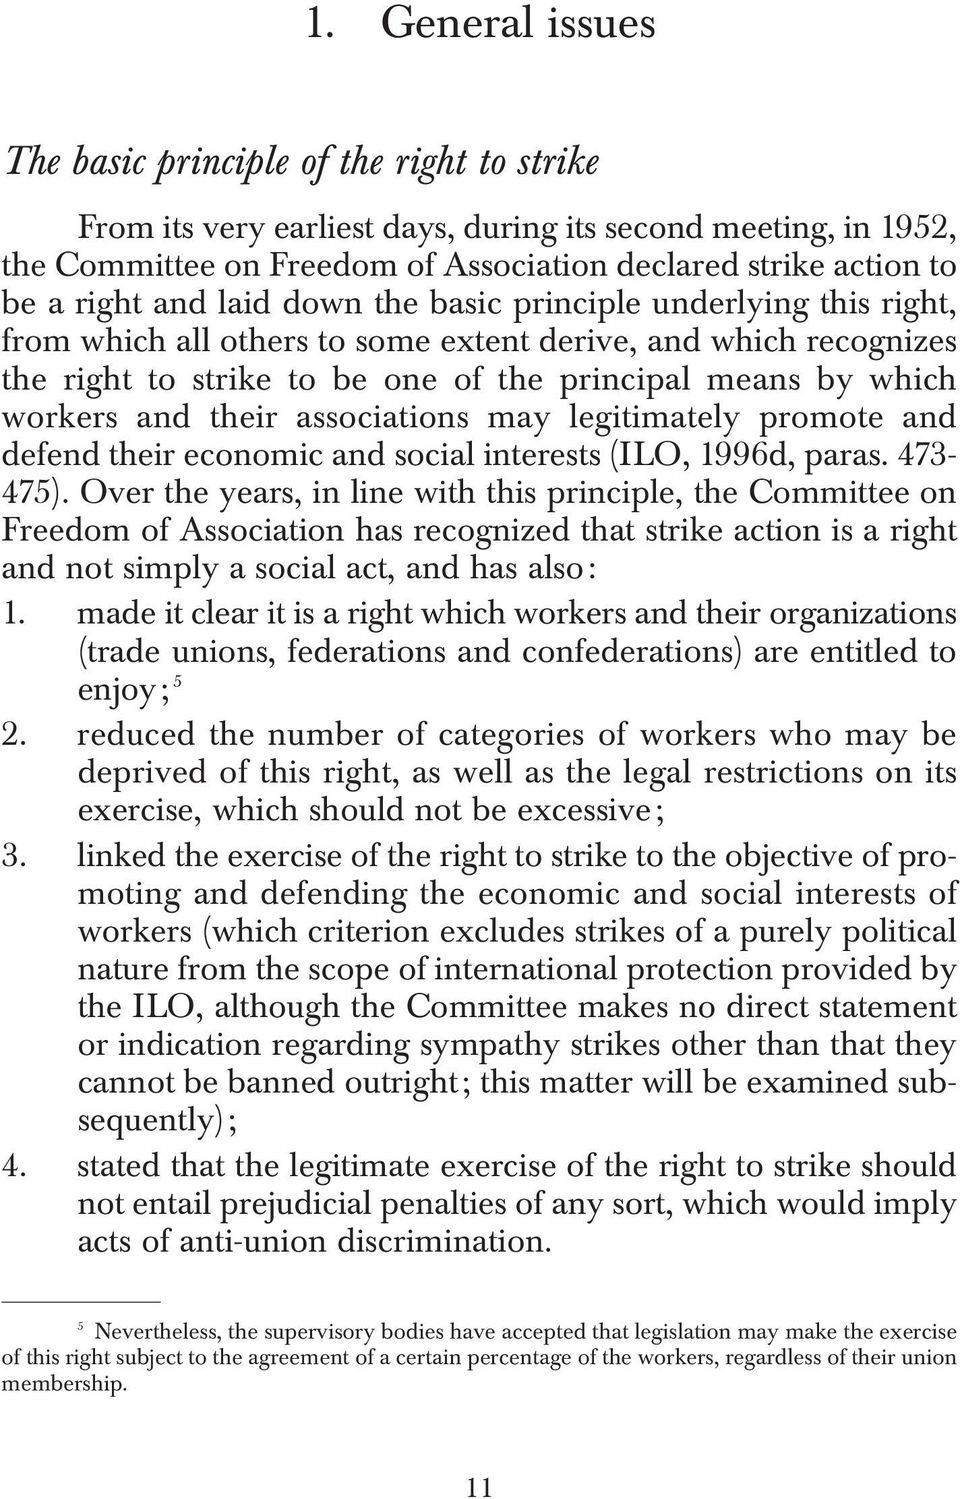 and their associations may legitimately promote and defend their economic and social interests (ILO, 1996d, paras. 473-475).